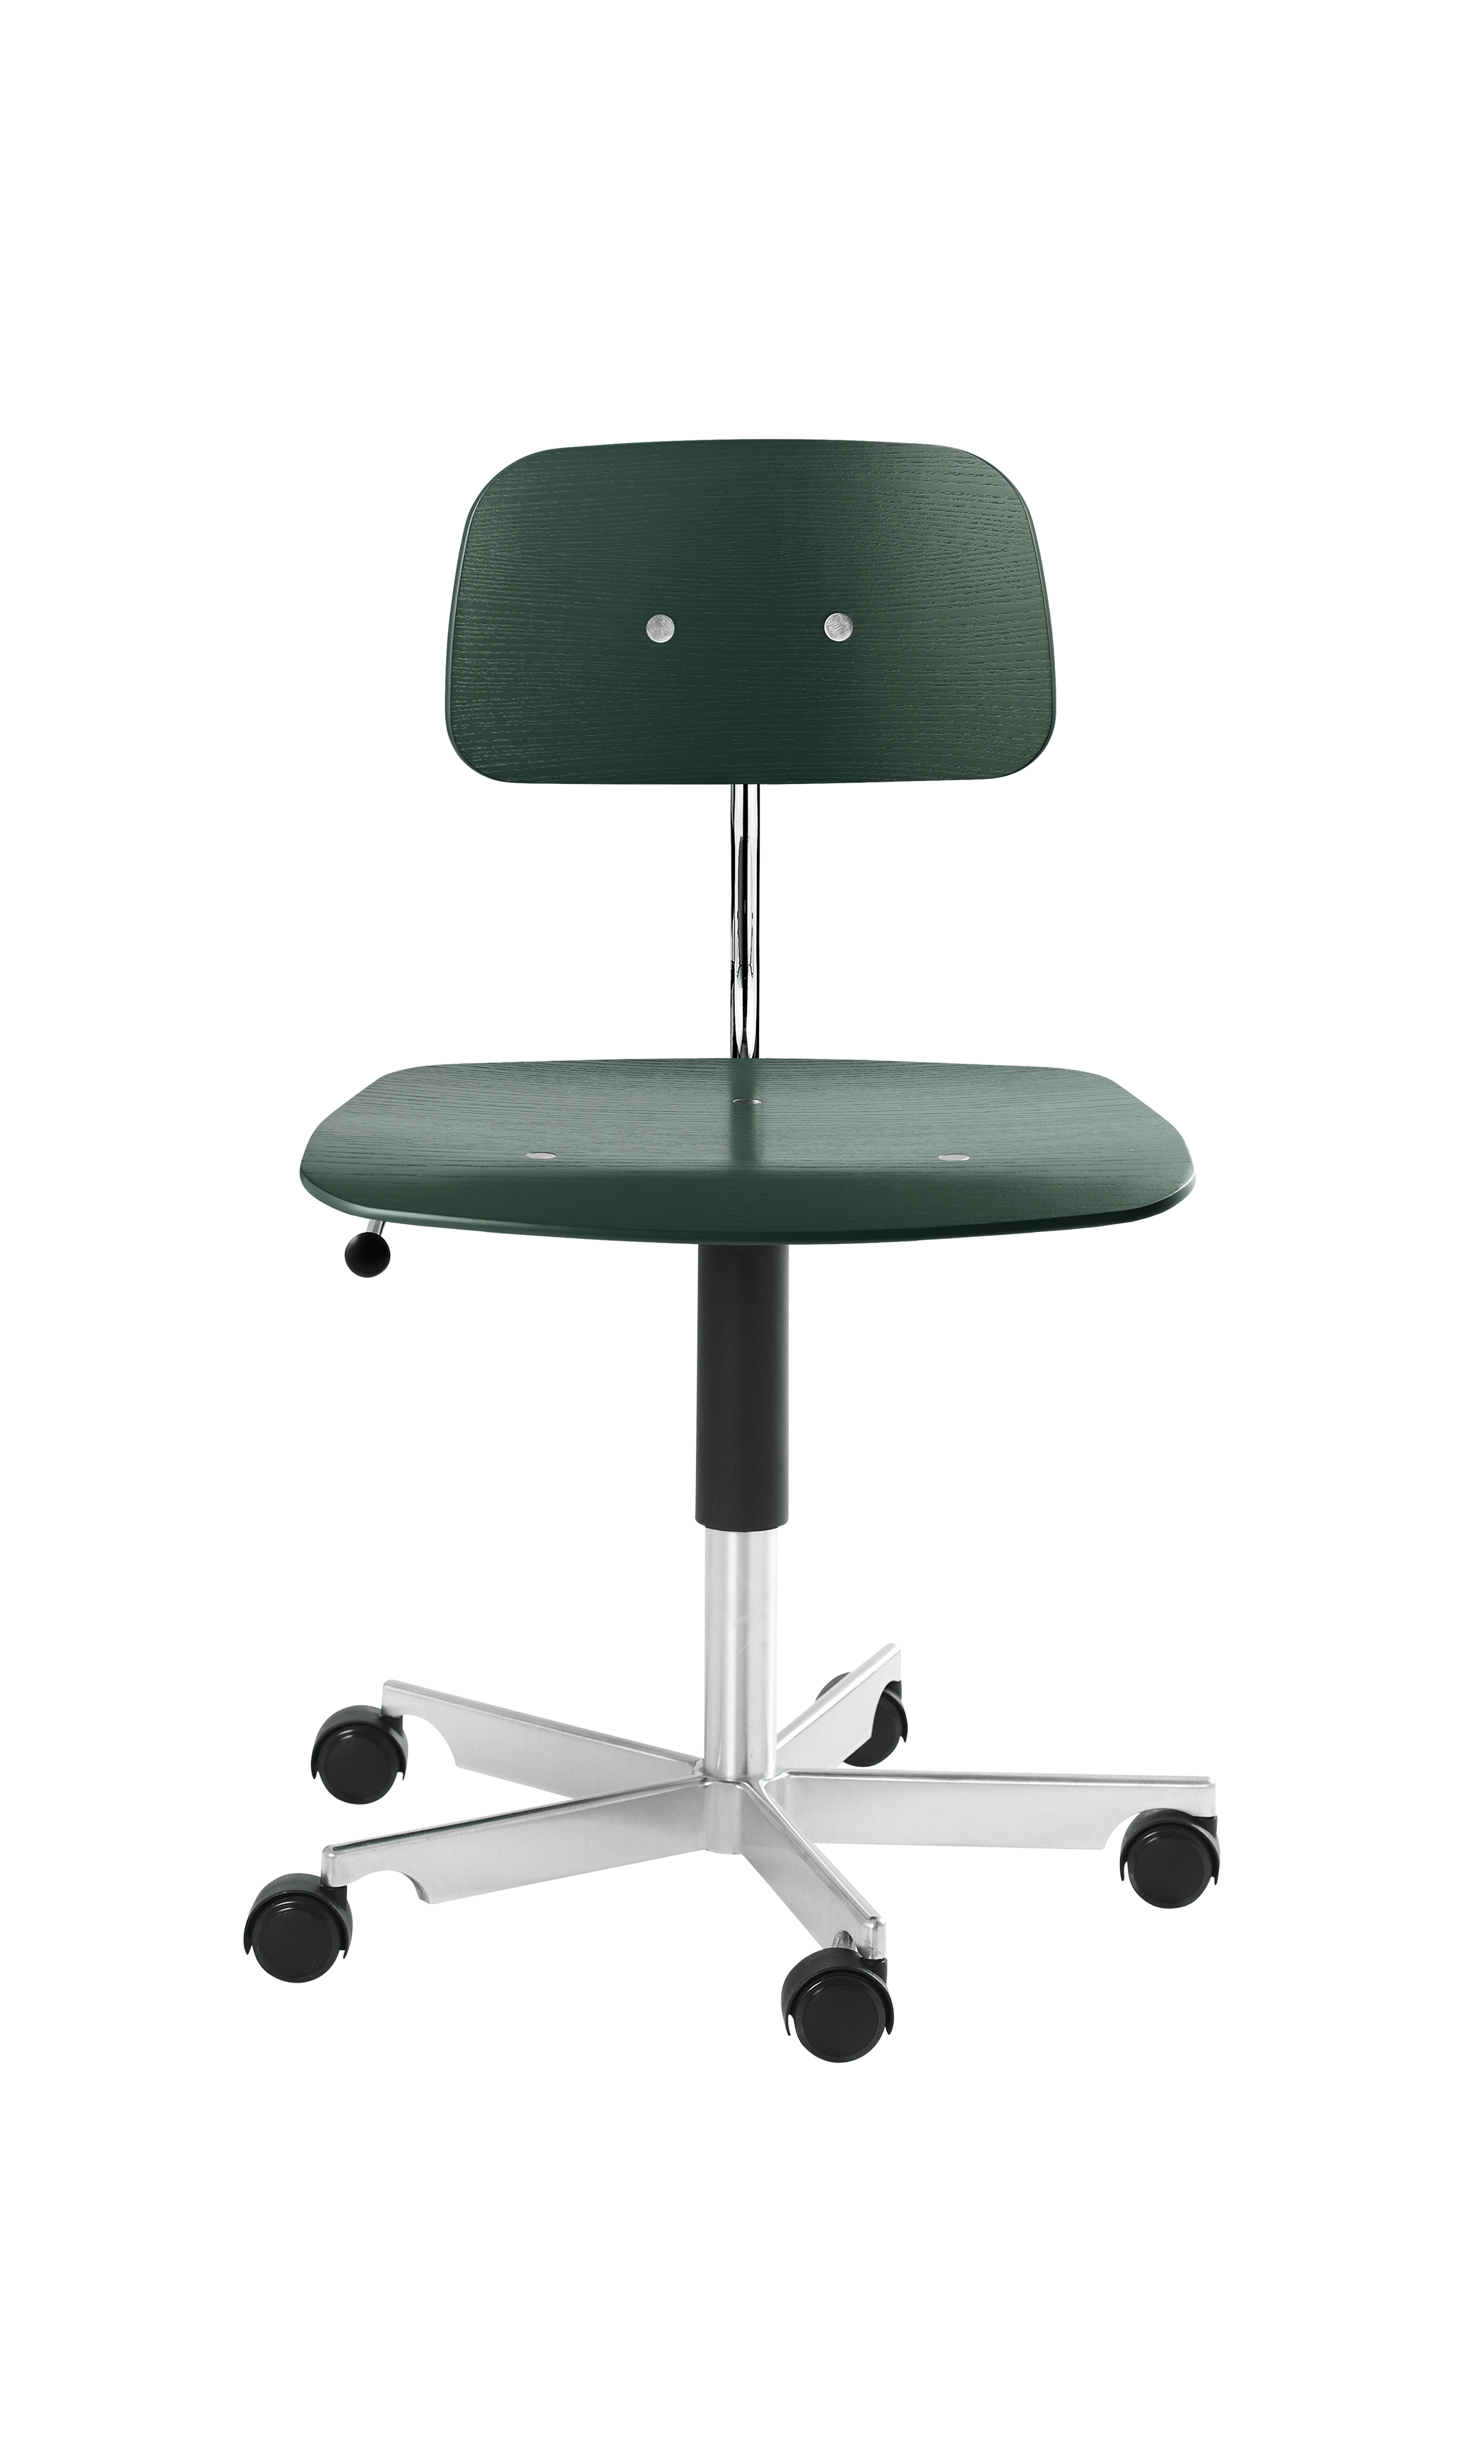 Kevi Chair Classic Office Chair In Green Buy Kevi 2533 Online Engelbrechts